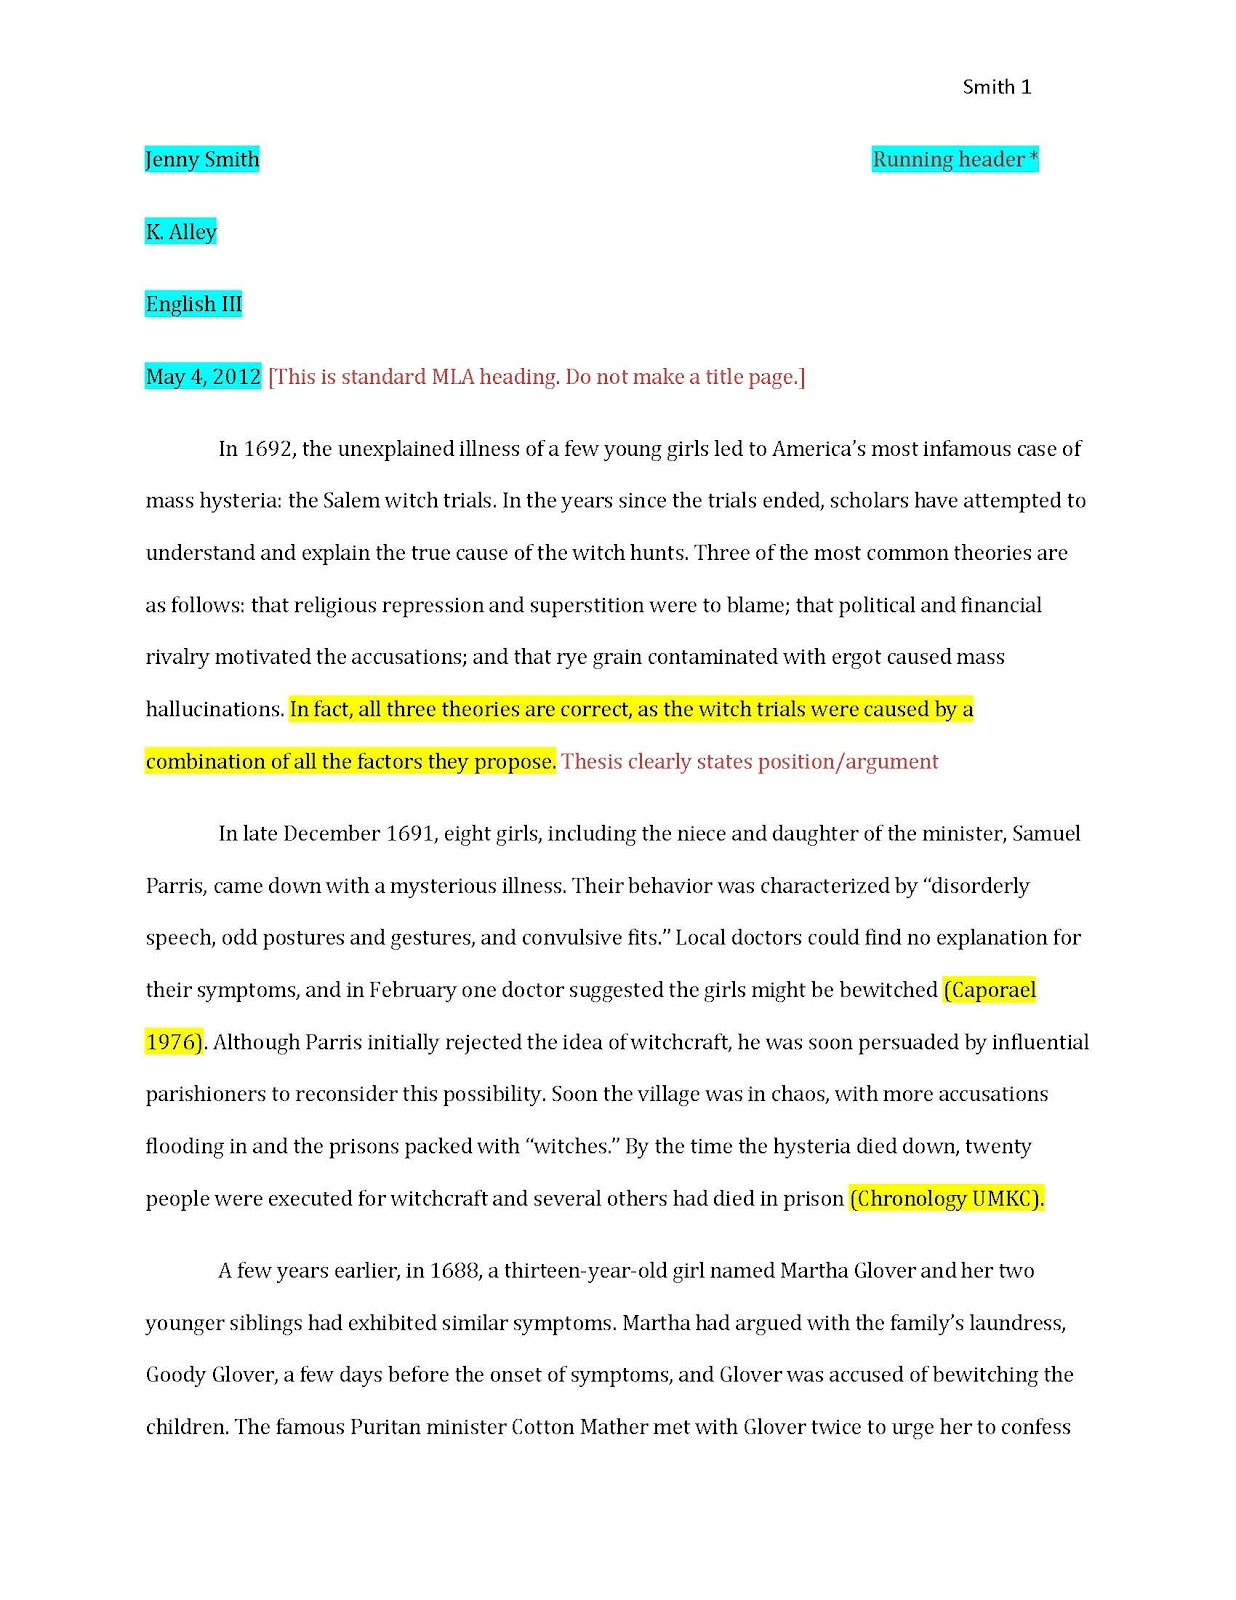 004 Research Paper How To Cite Examplepaper Page 1 Outstanding Mla Format A In 8 Apa Style Full